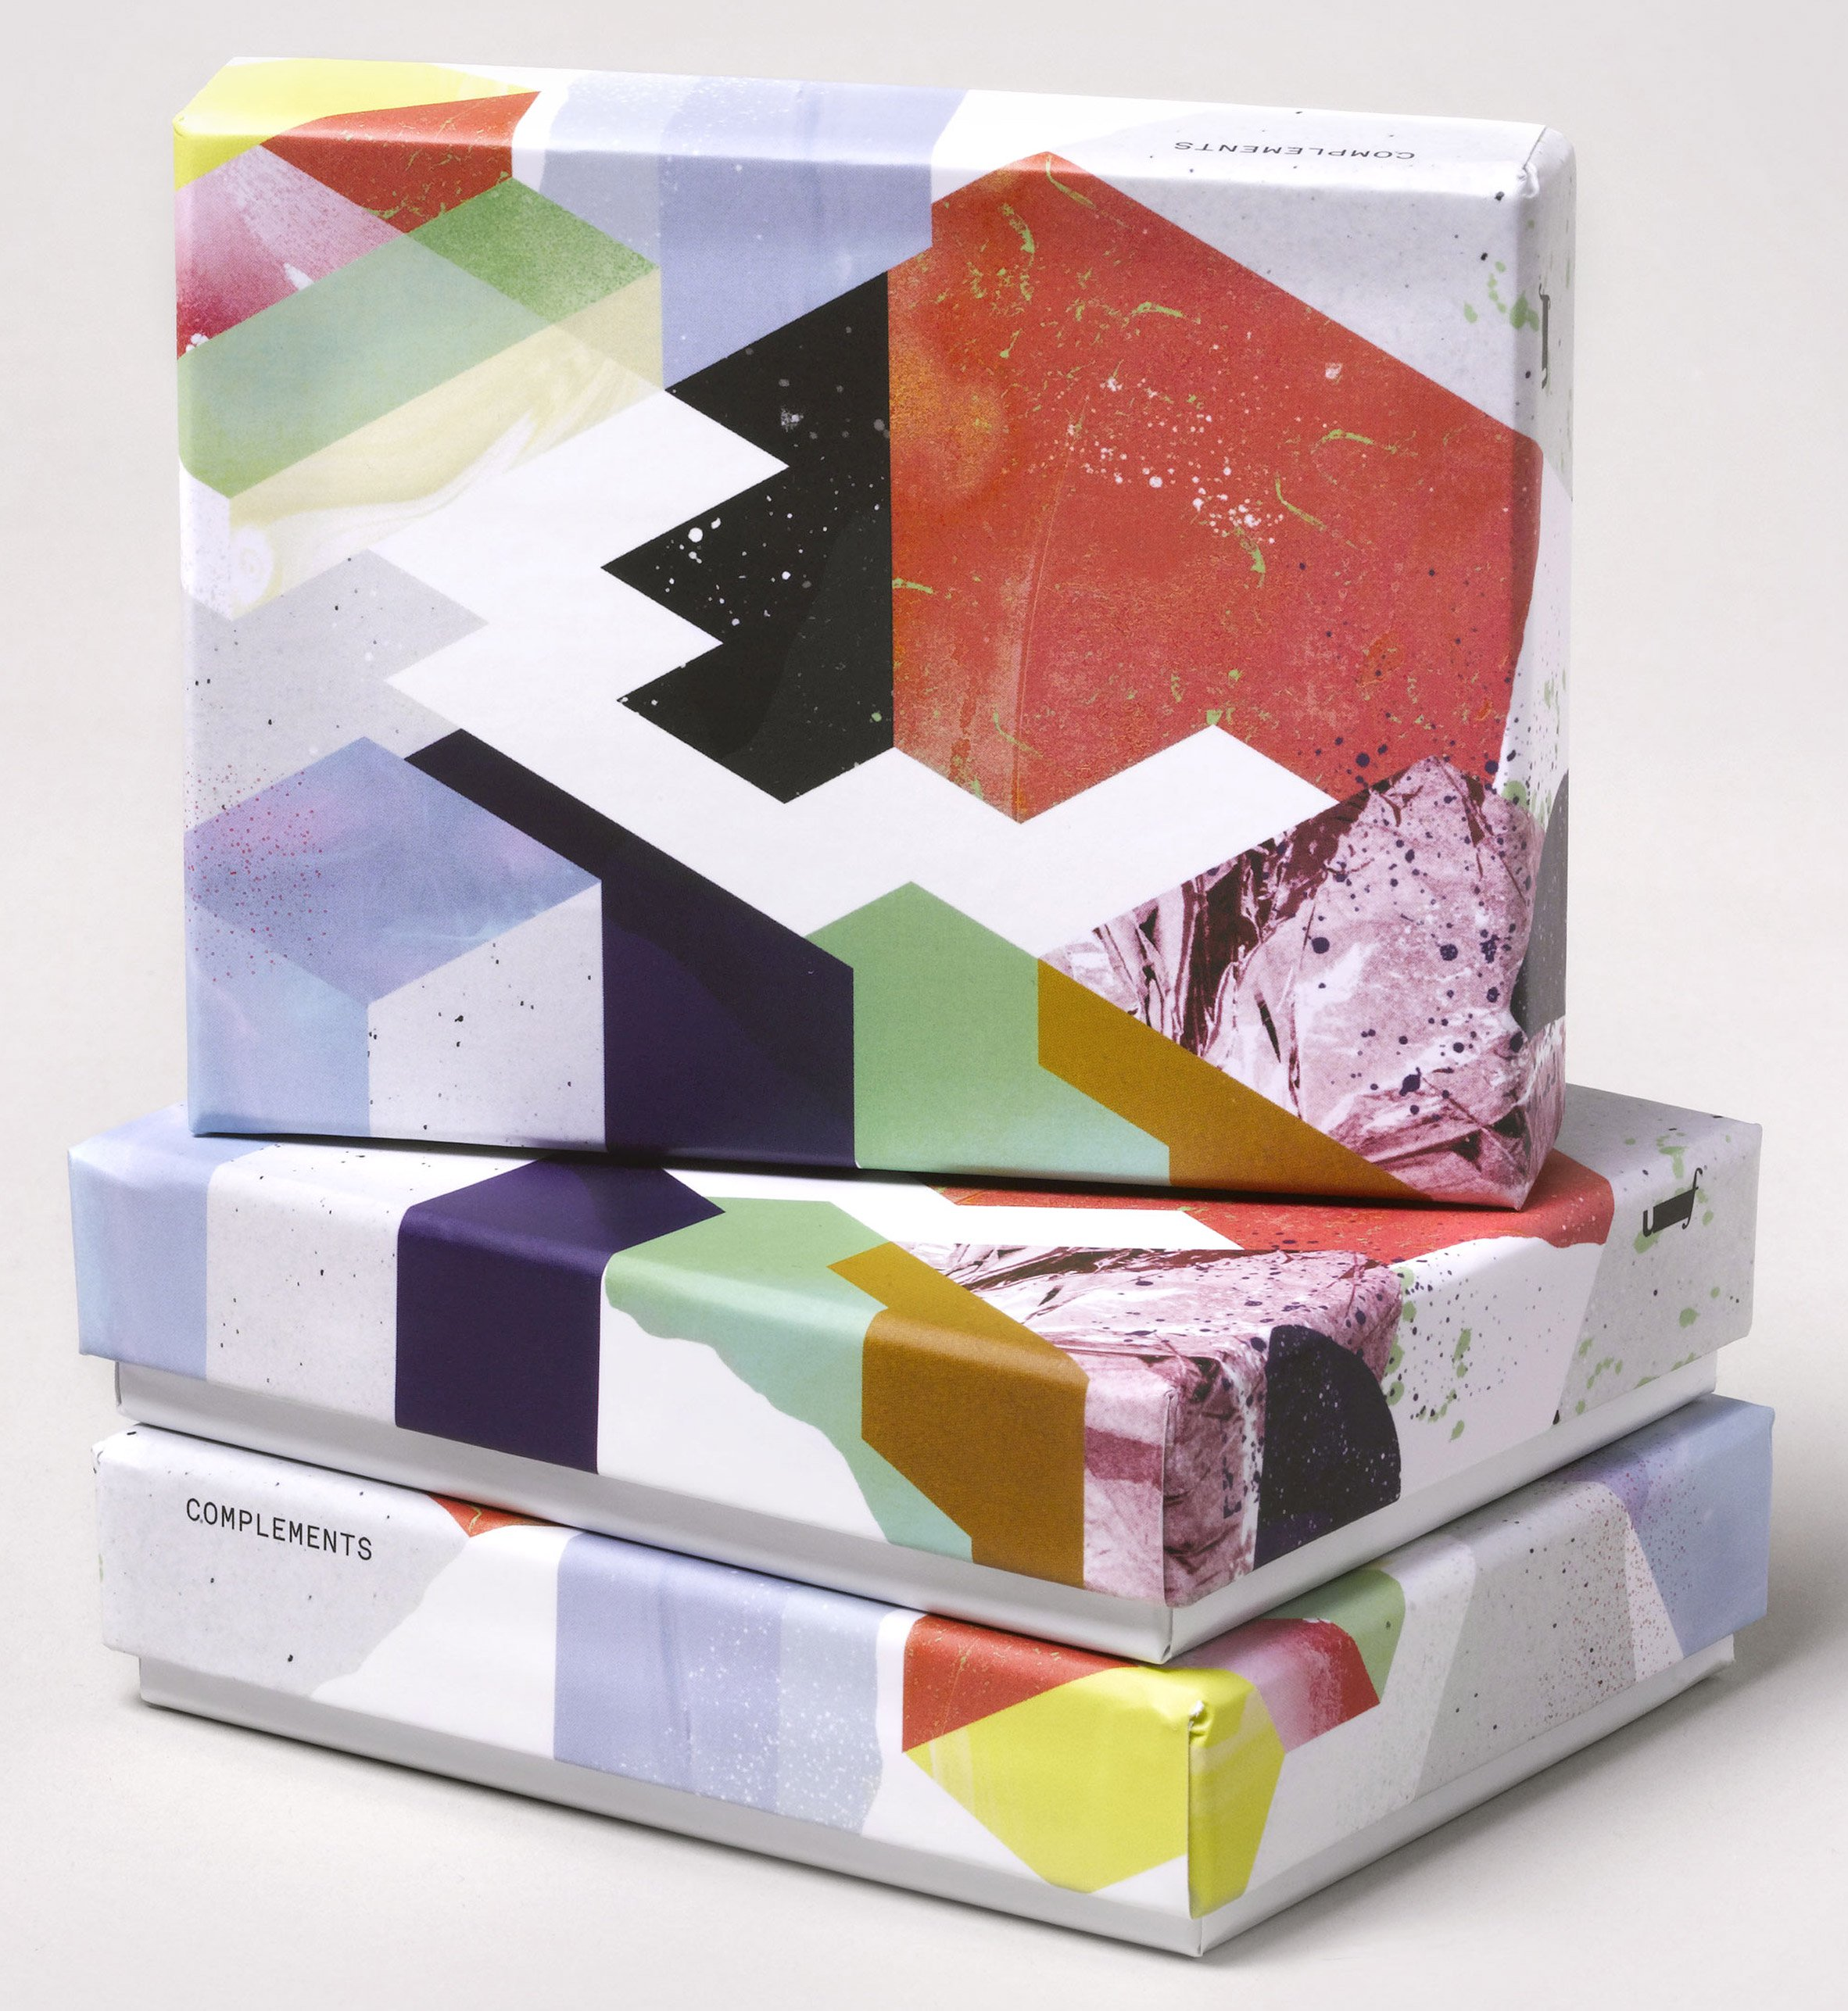 complements-chocolates-by-universal-favourite_dezeen_2364_col_3-2.jpg